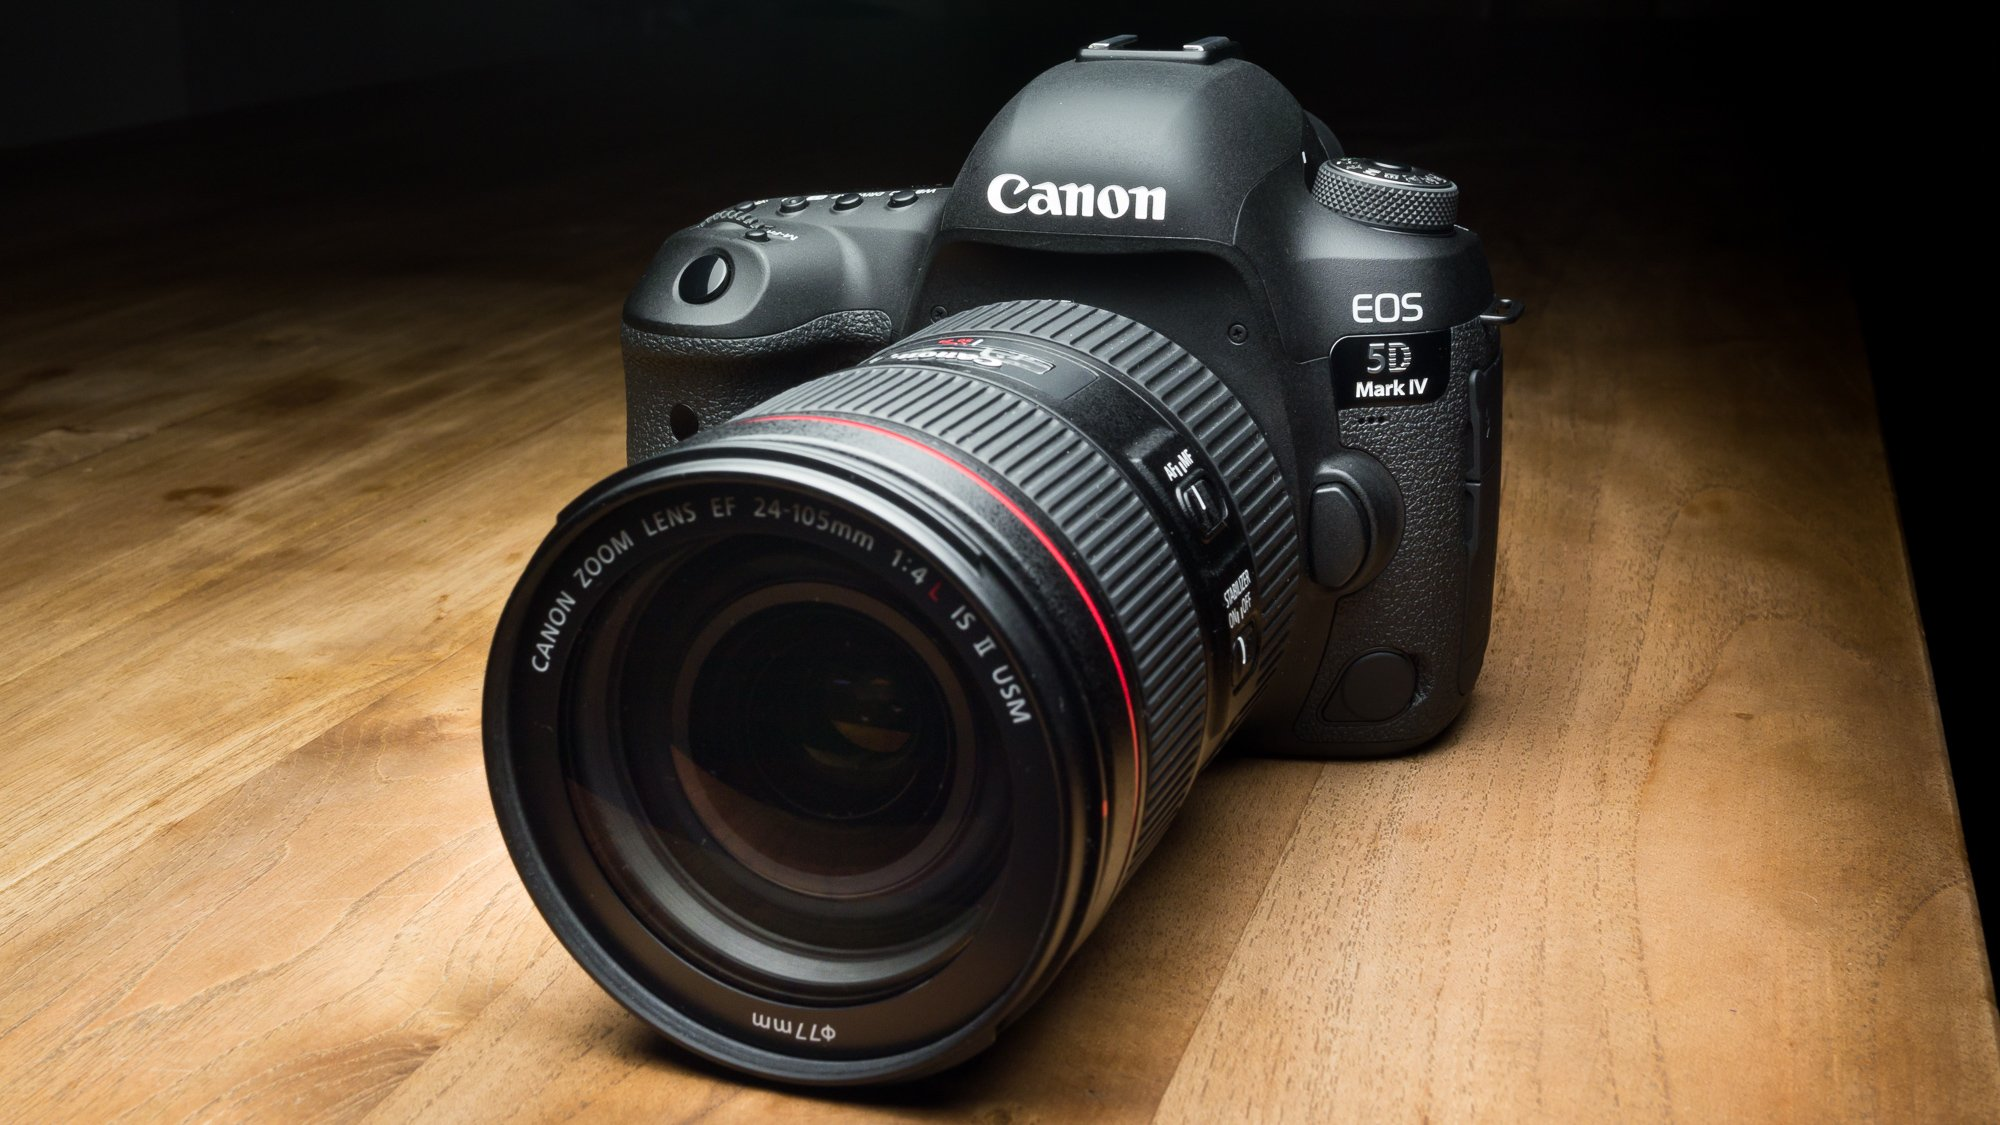 Canon EOS 5D Mark IV review: Approaching perfection